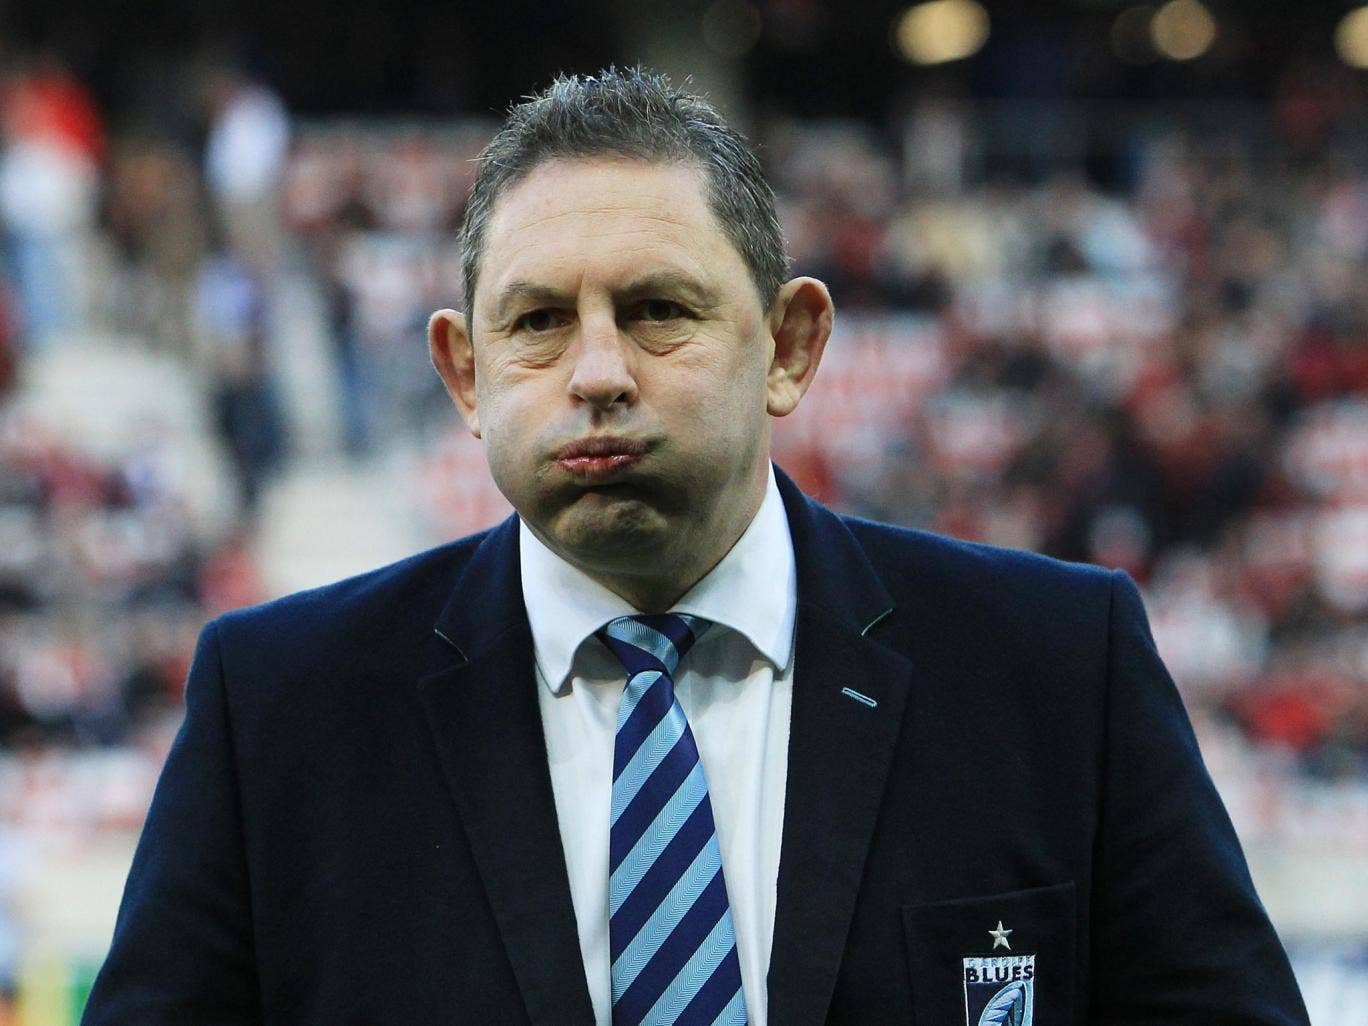 Phil Davies resigned with immediate effect from Cardiff Blues following the defeat to Zebre